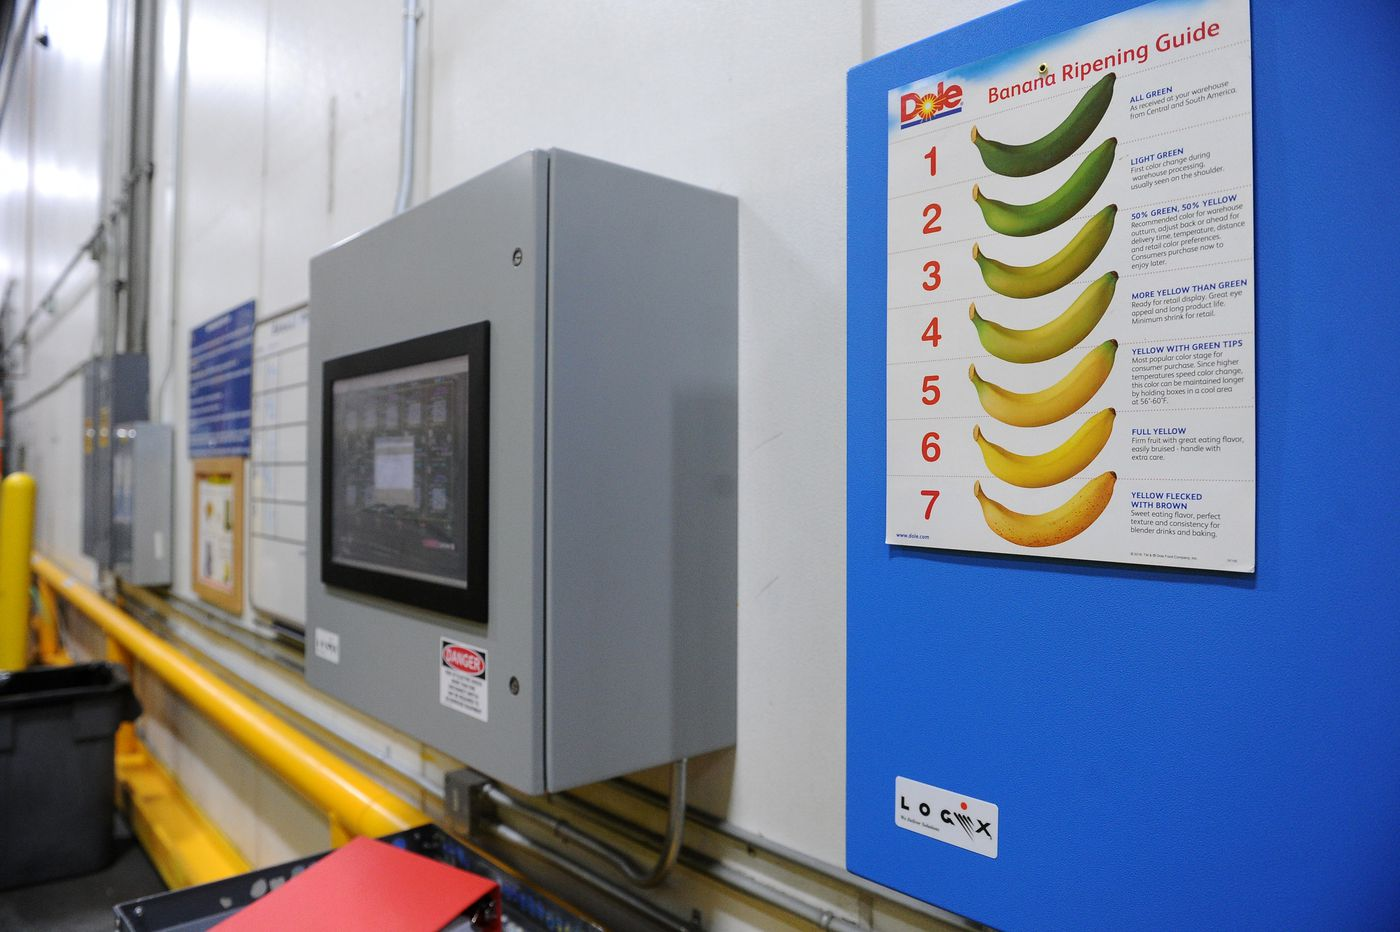 A banana-ripening chart hangs next to the control panel that controls the rooms and other parts of the Carrs Safeway distribution center in Anchorage, Alaska on Thursday, Feb. 8, 2018. (Bob Hallinen / ADN)